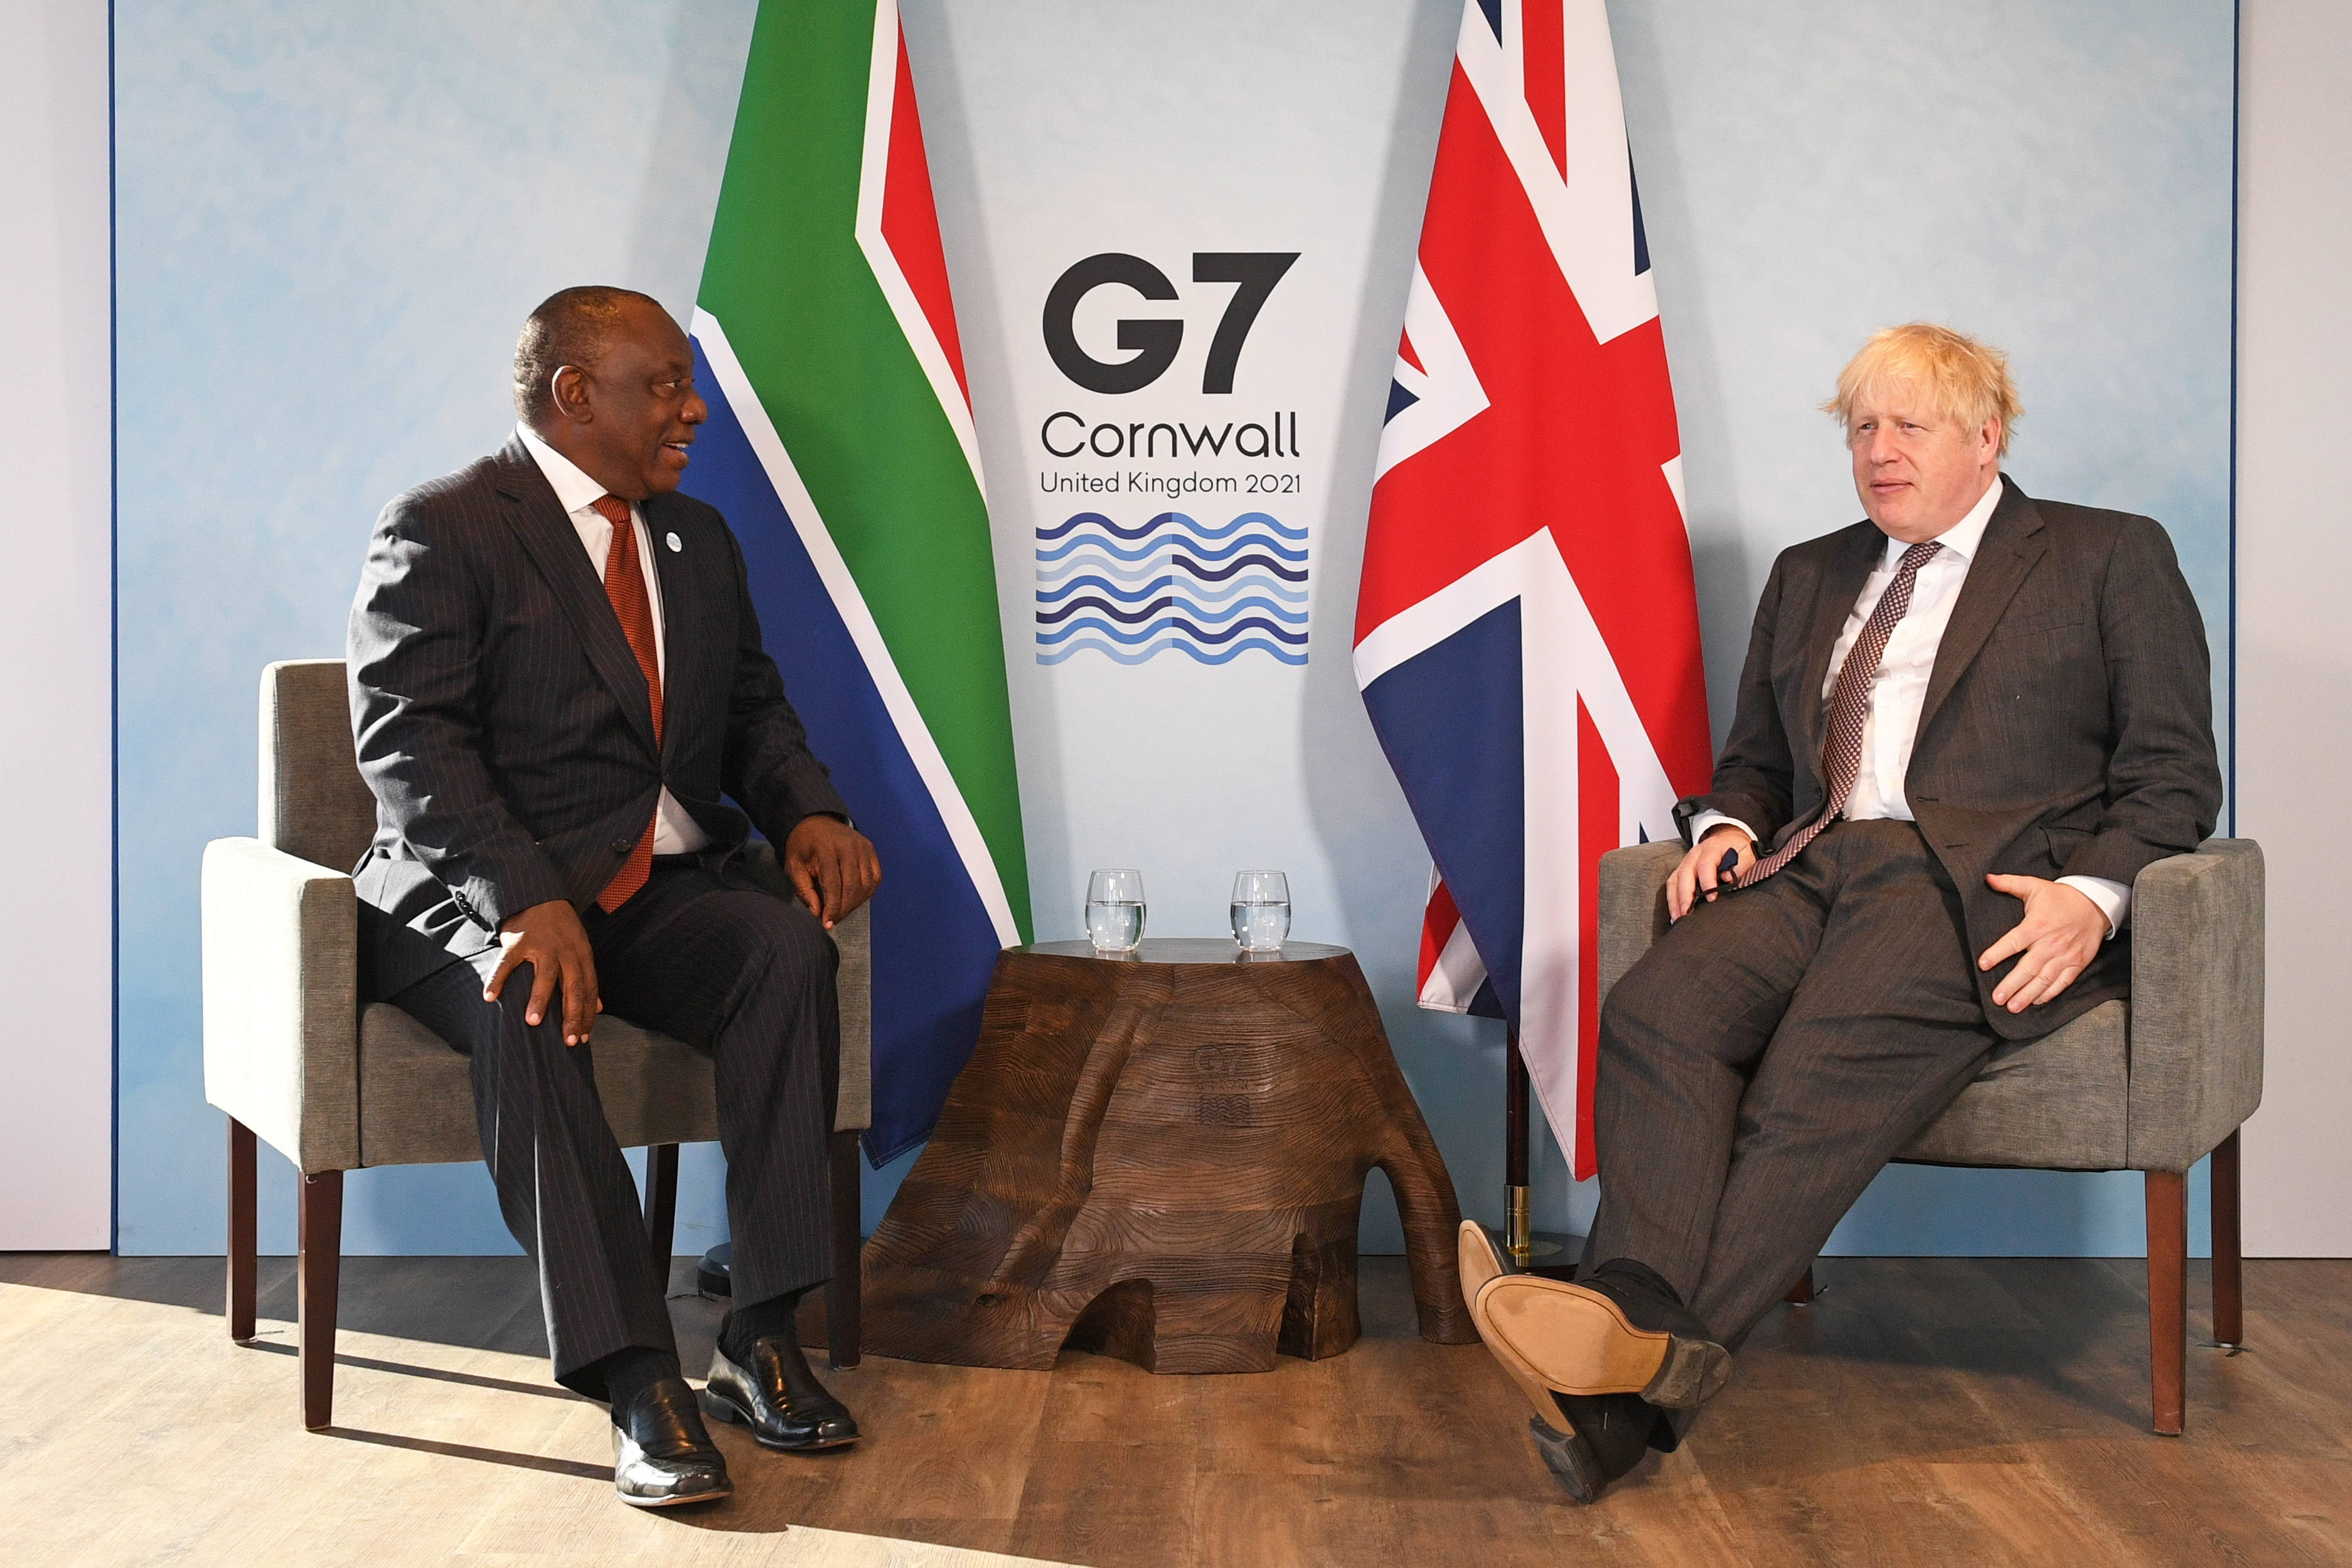 Britain's Prime Minister Boris Johnson and South Africa's President Cyril Ramaphosa attend a bilateral meeting during G7 summit in Carbis Bay, Cornwall, Britain, June 13, 2021. Stefan Rousseau/Pool via REUTERS